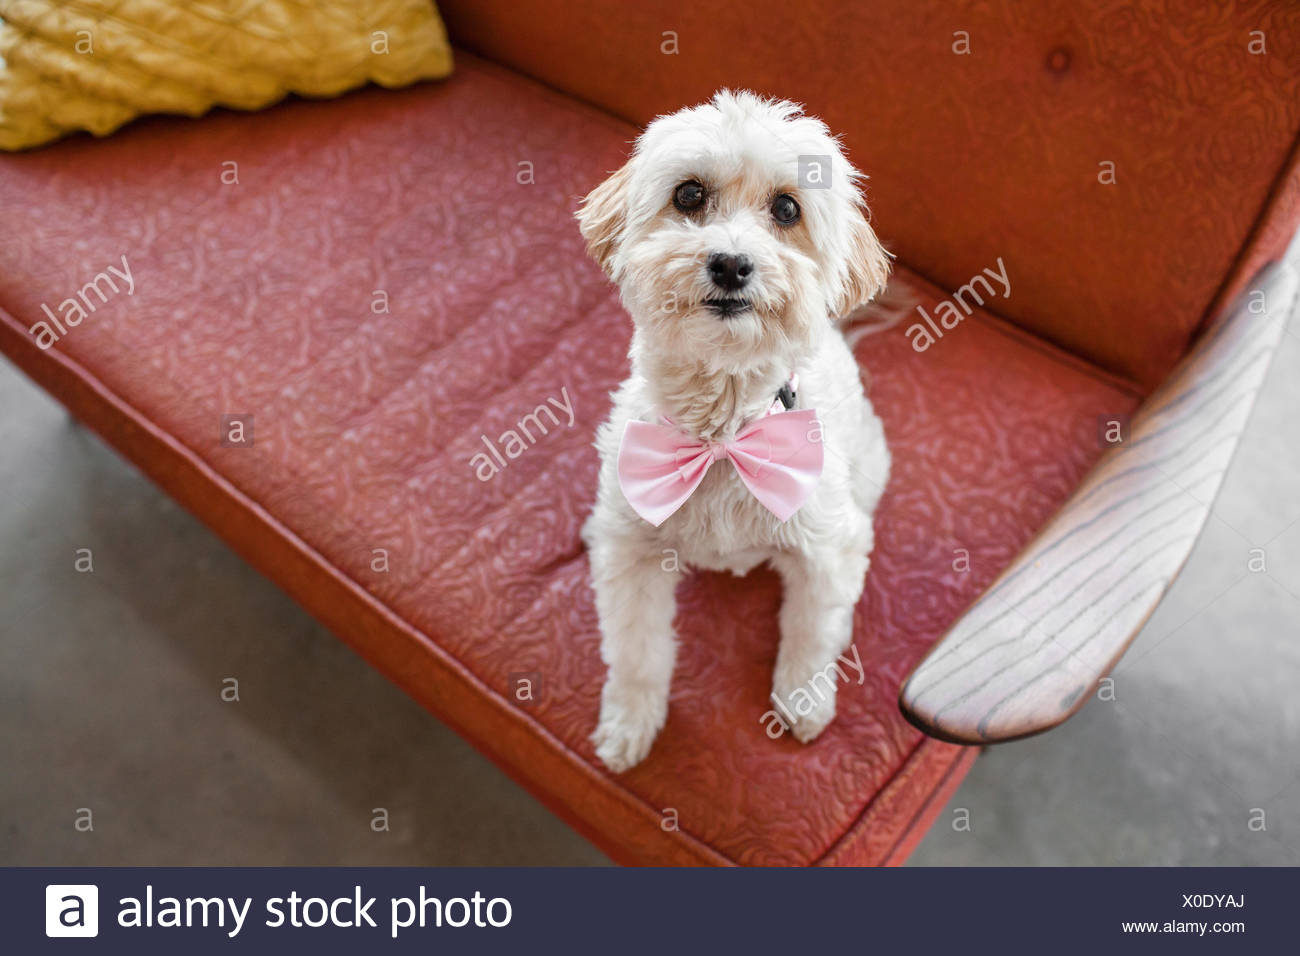 Portrait of cute dog sitting on living room sofa - Stock Image